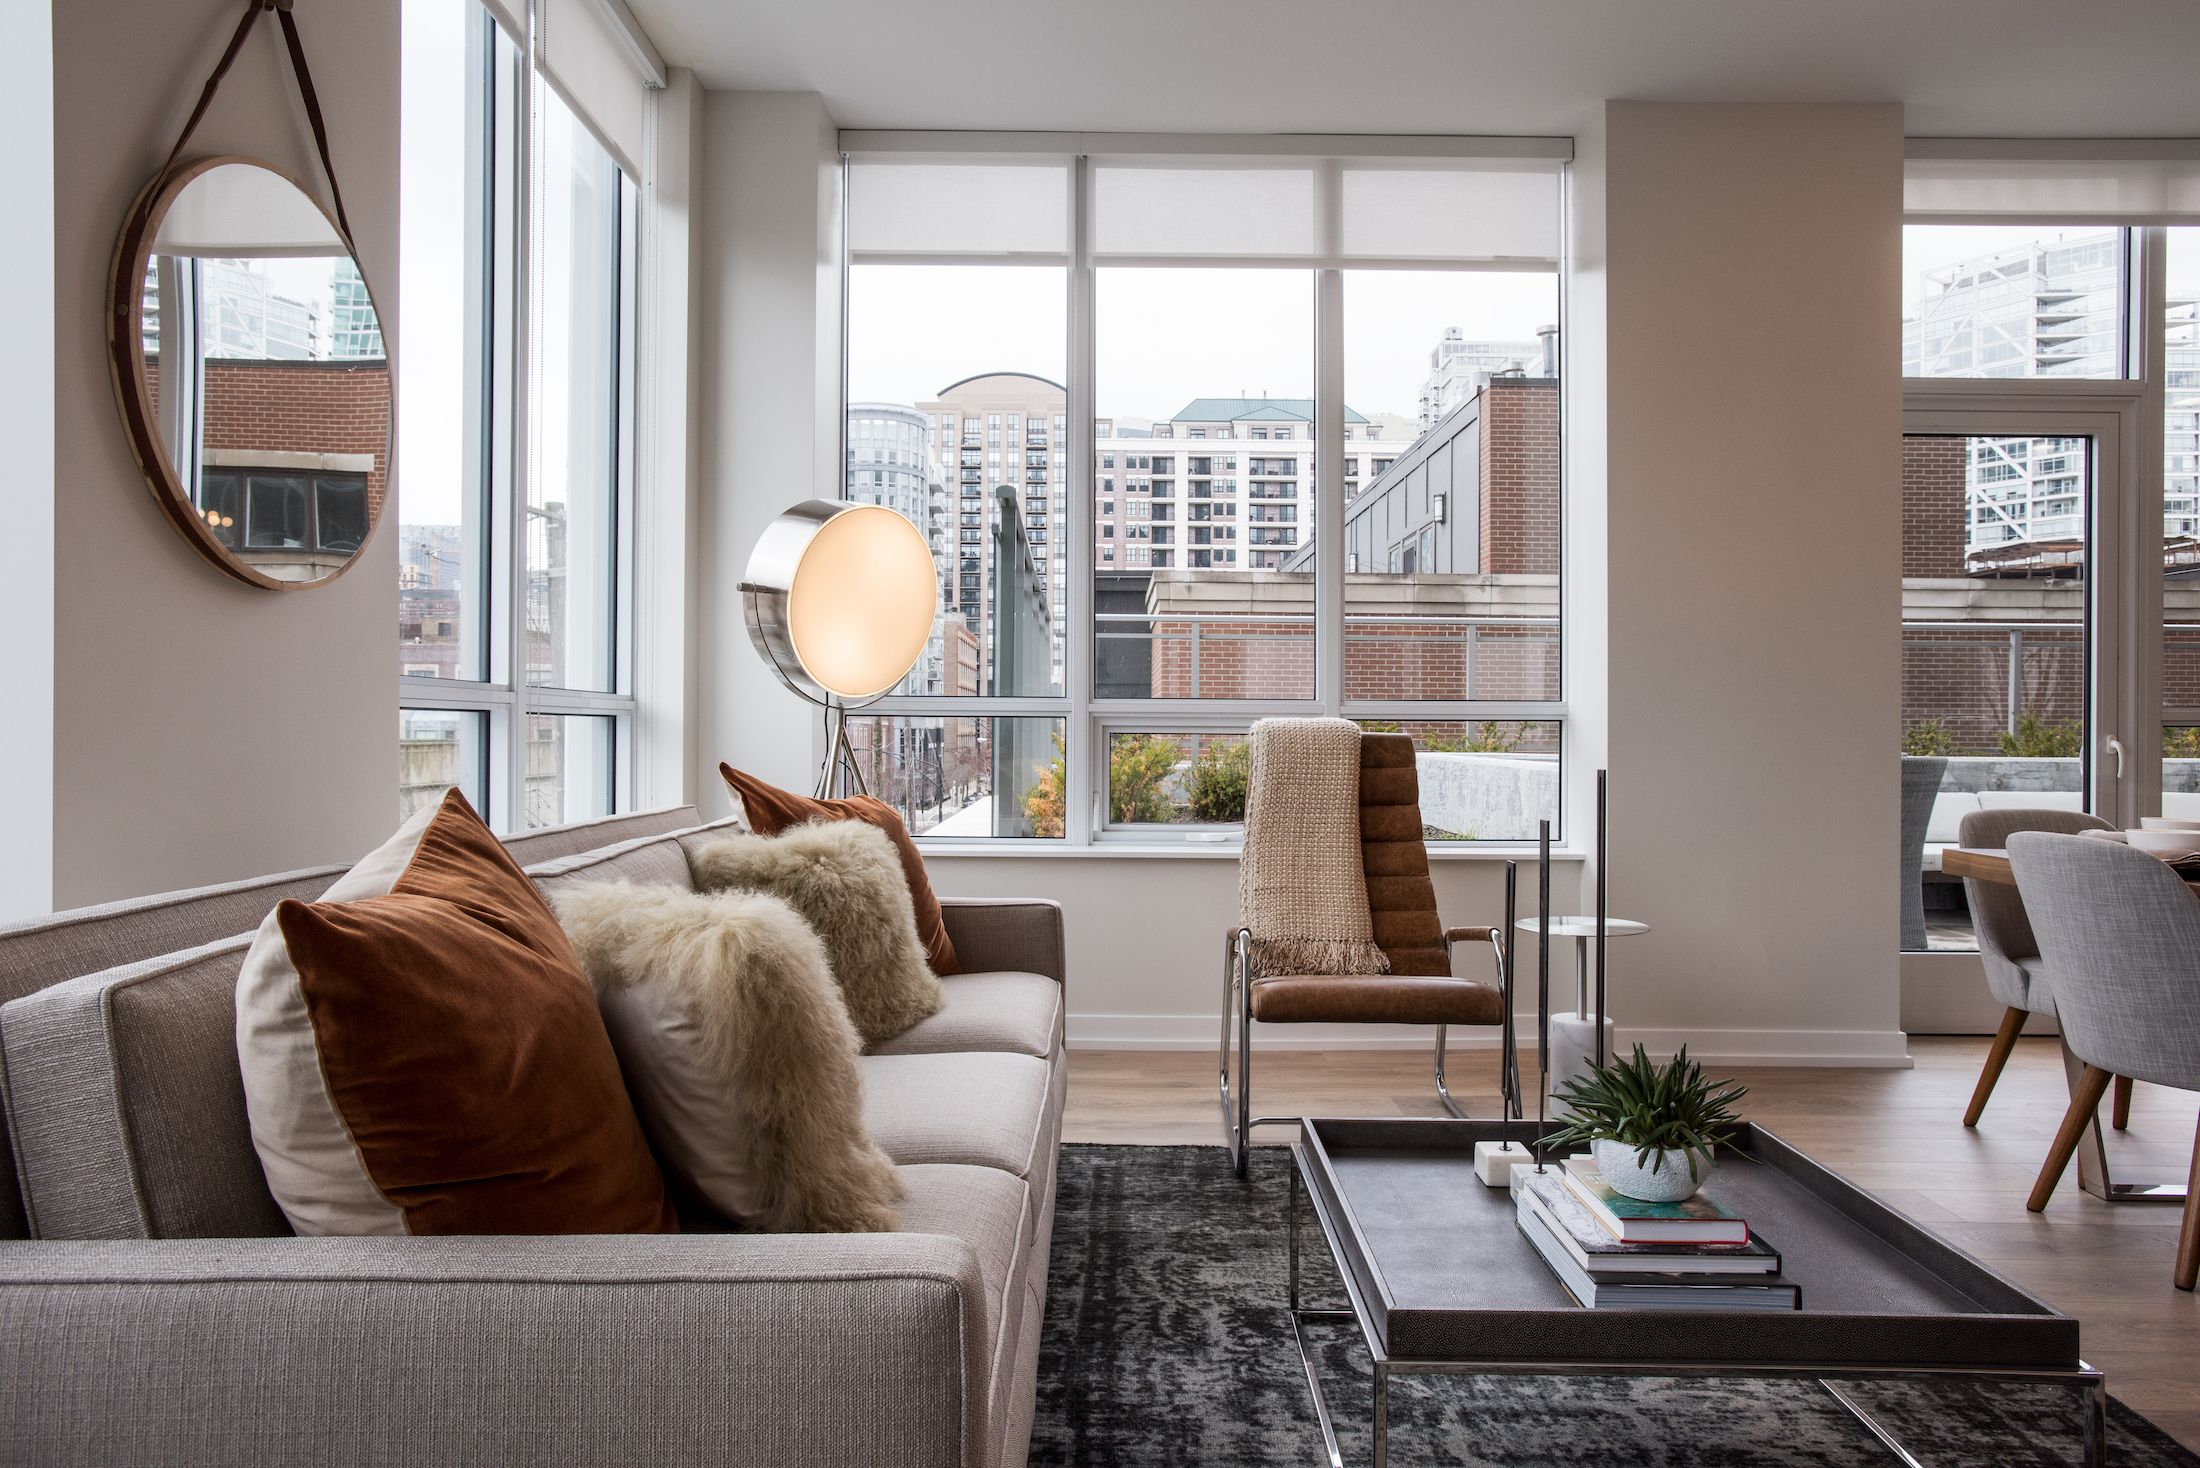 Inside The Hudson River North's latest luxury apartment